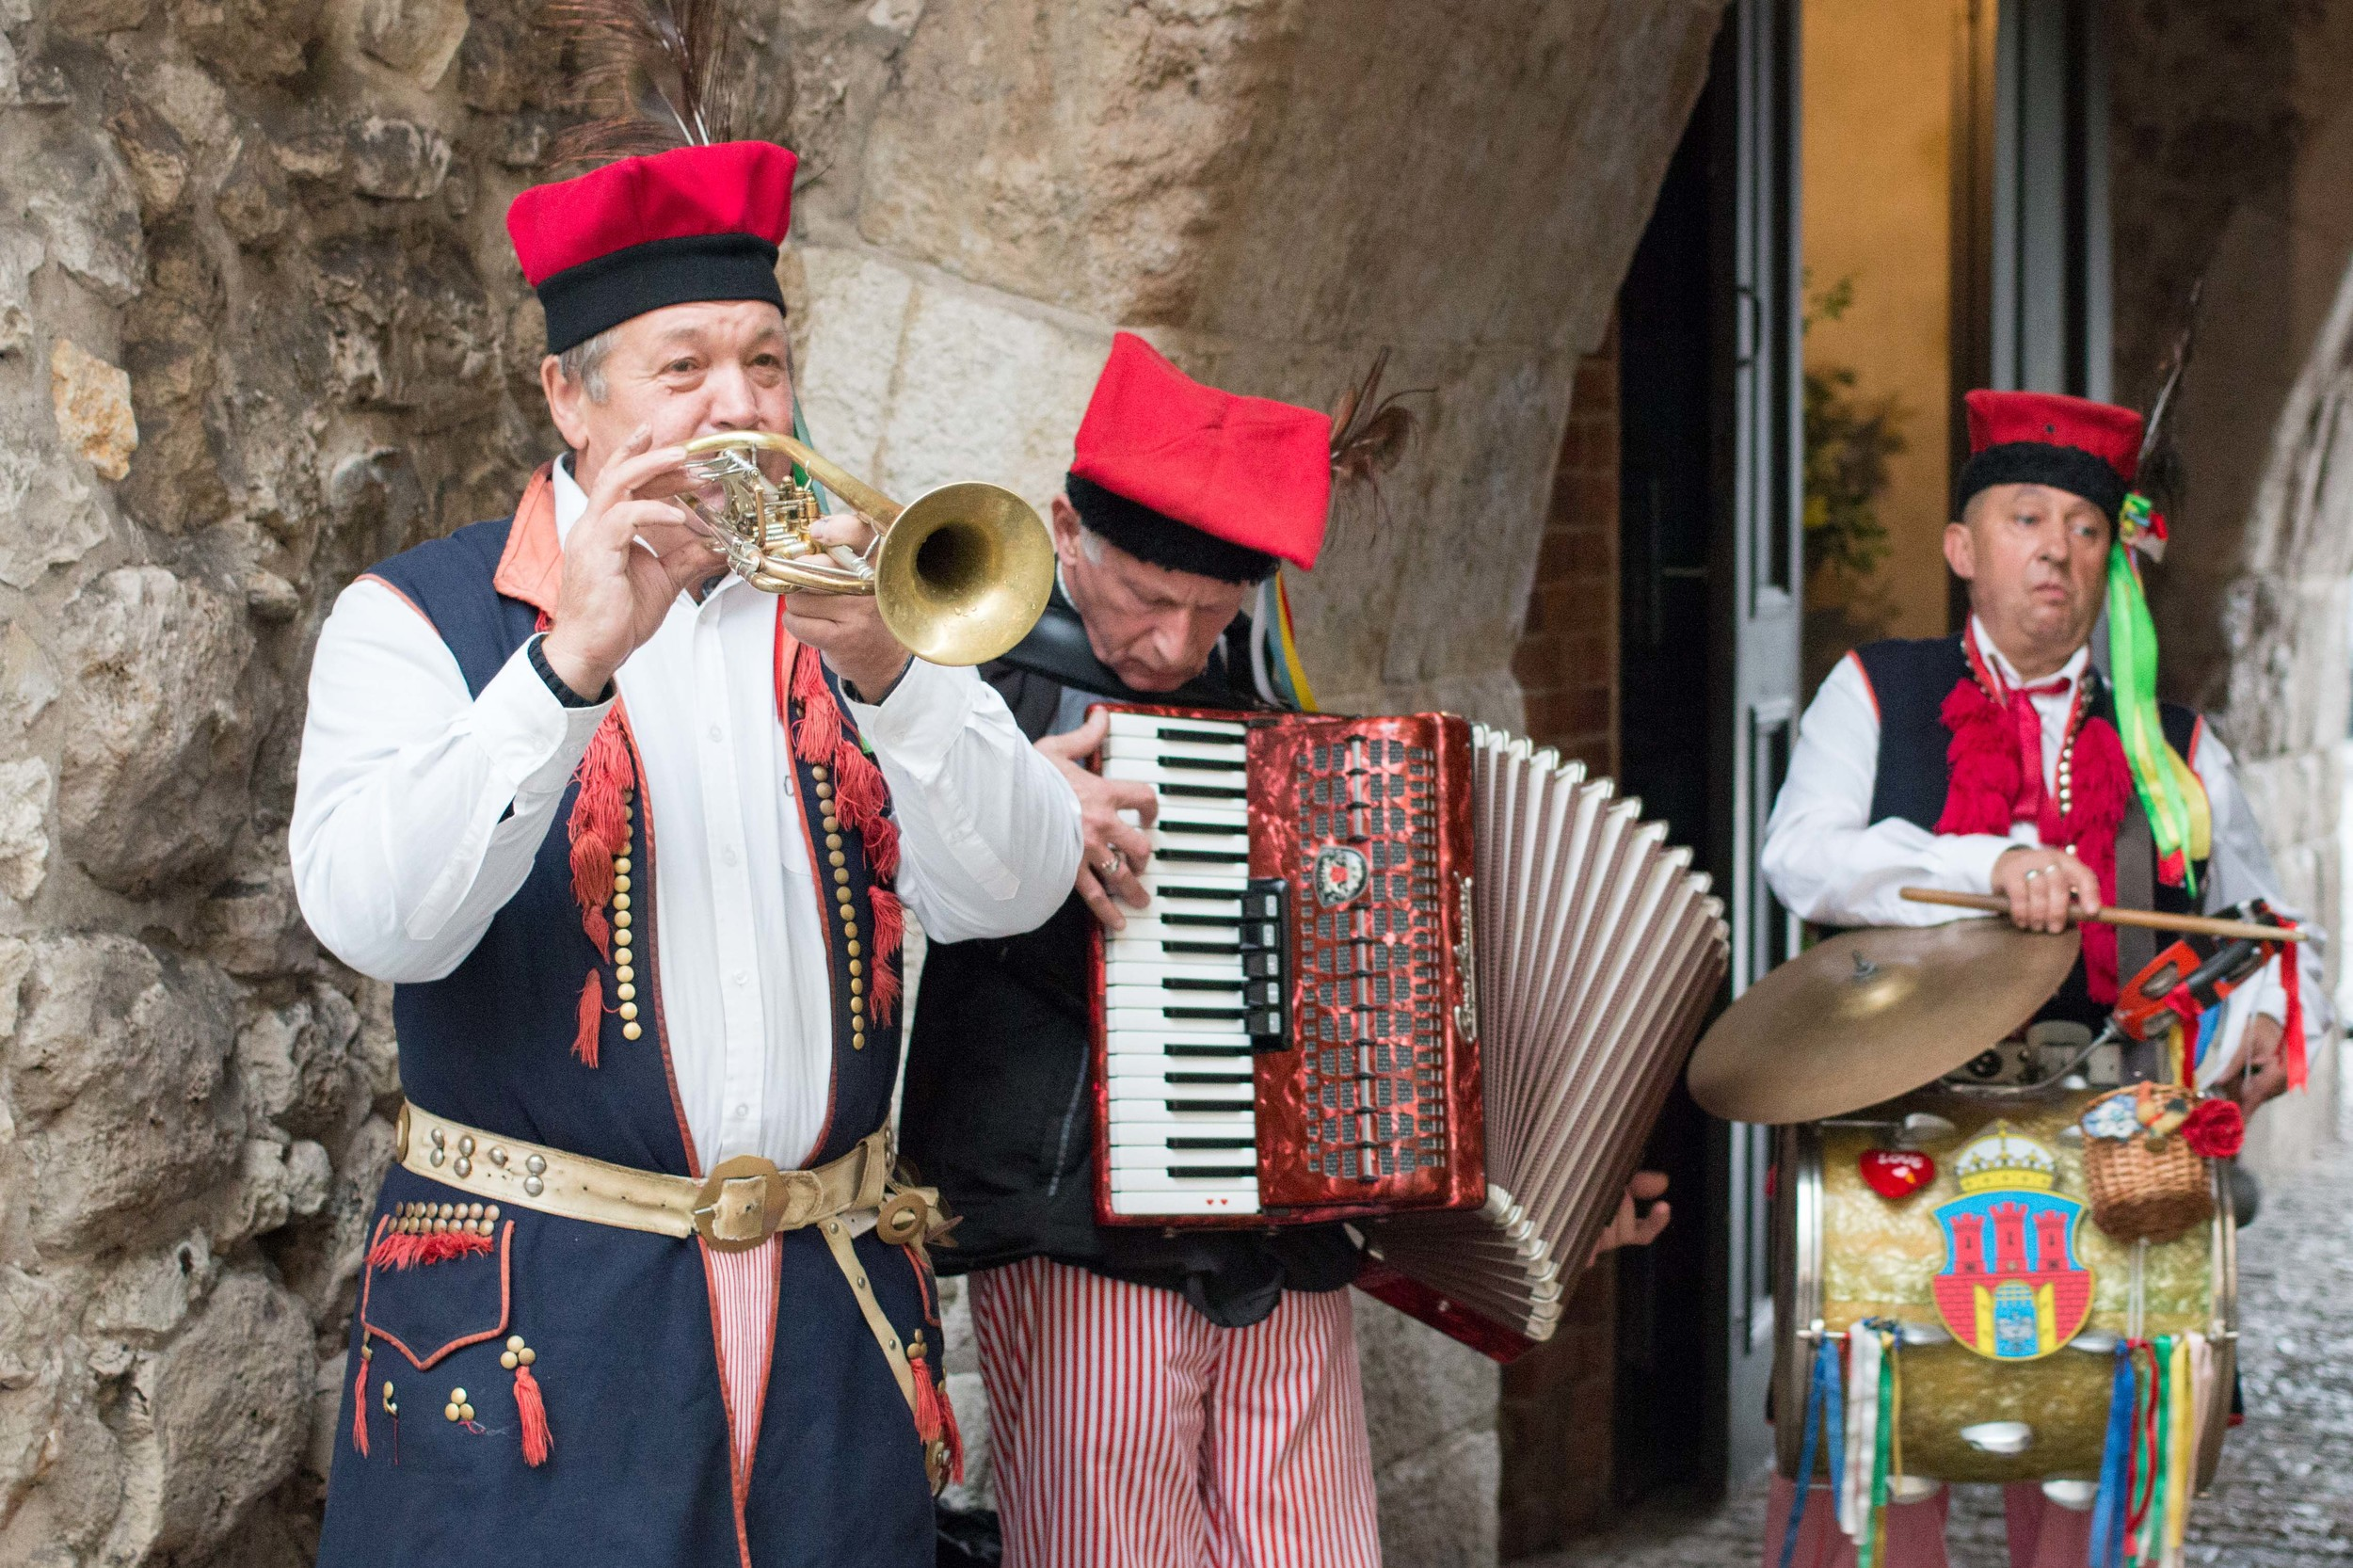 Old men dressed in traditional polish costumes that played music each day at one of the city gates